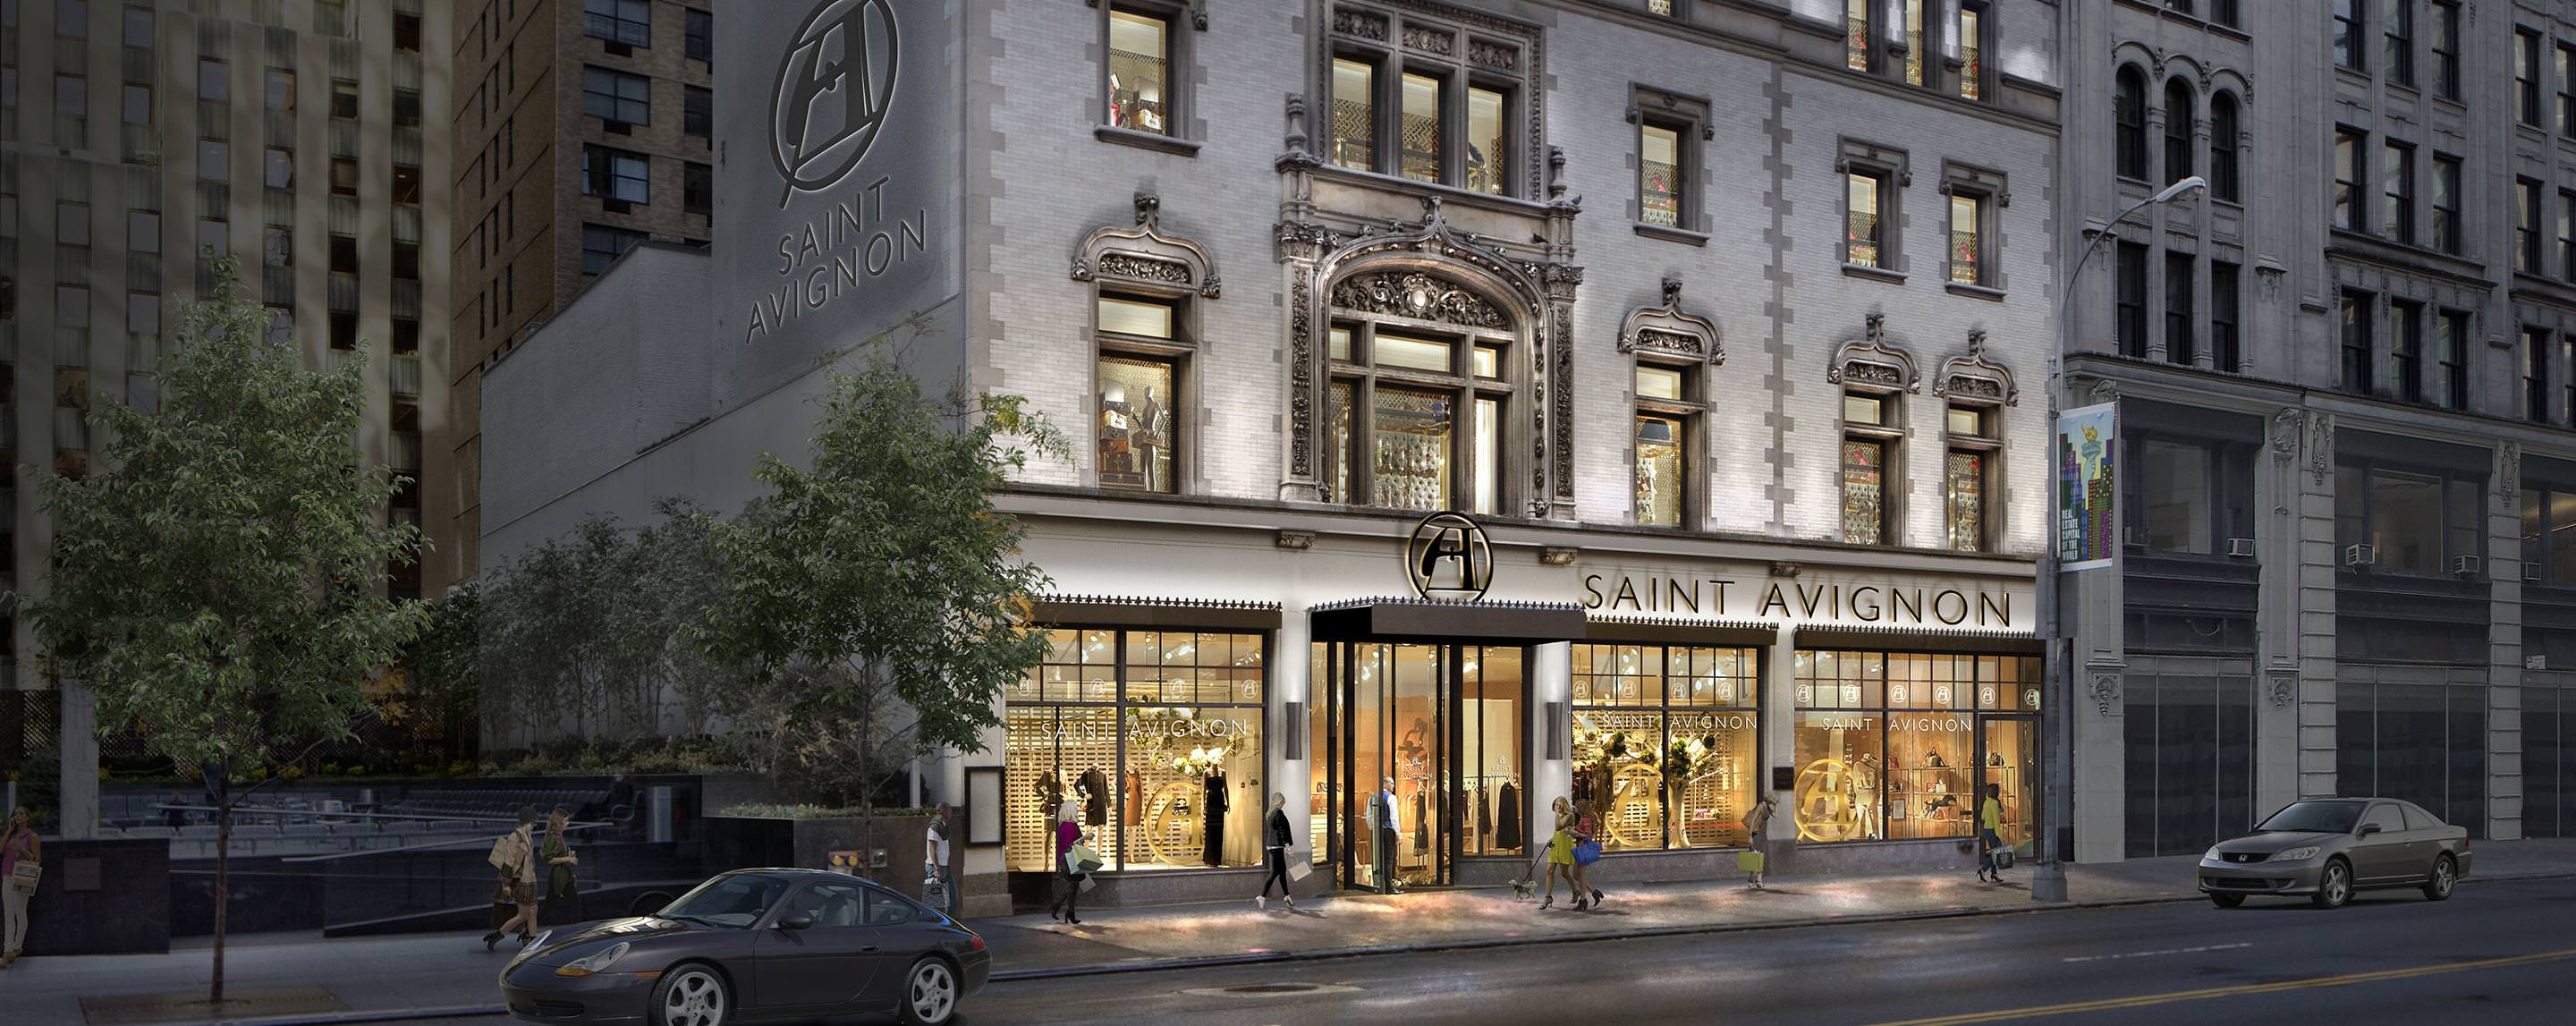 Our property on 218 W 57th Street lights up the street at dusk for shoppers passing by.